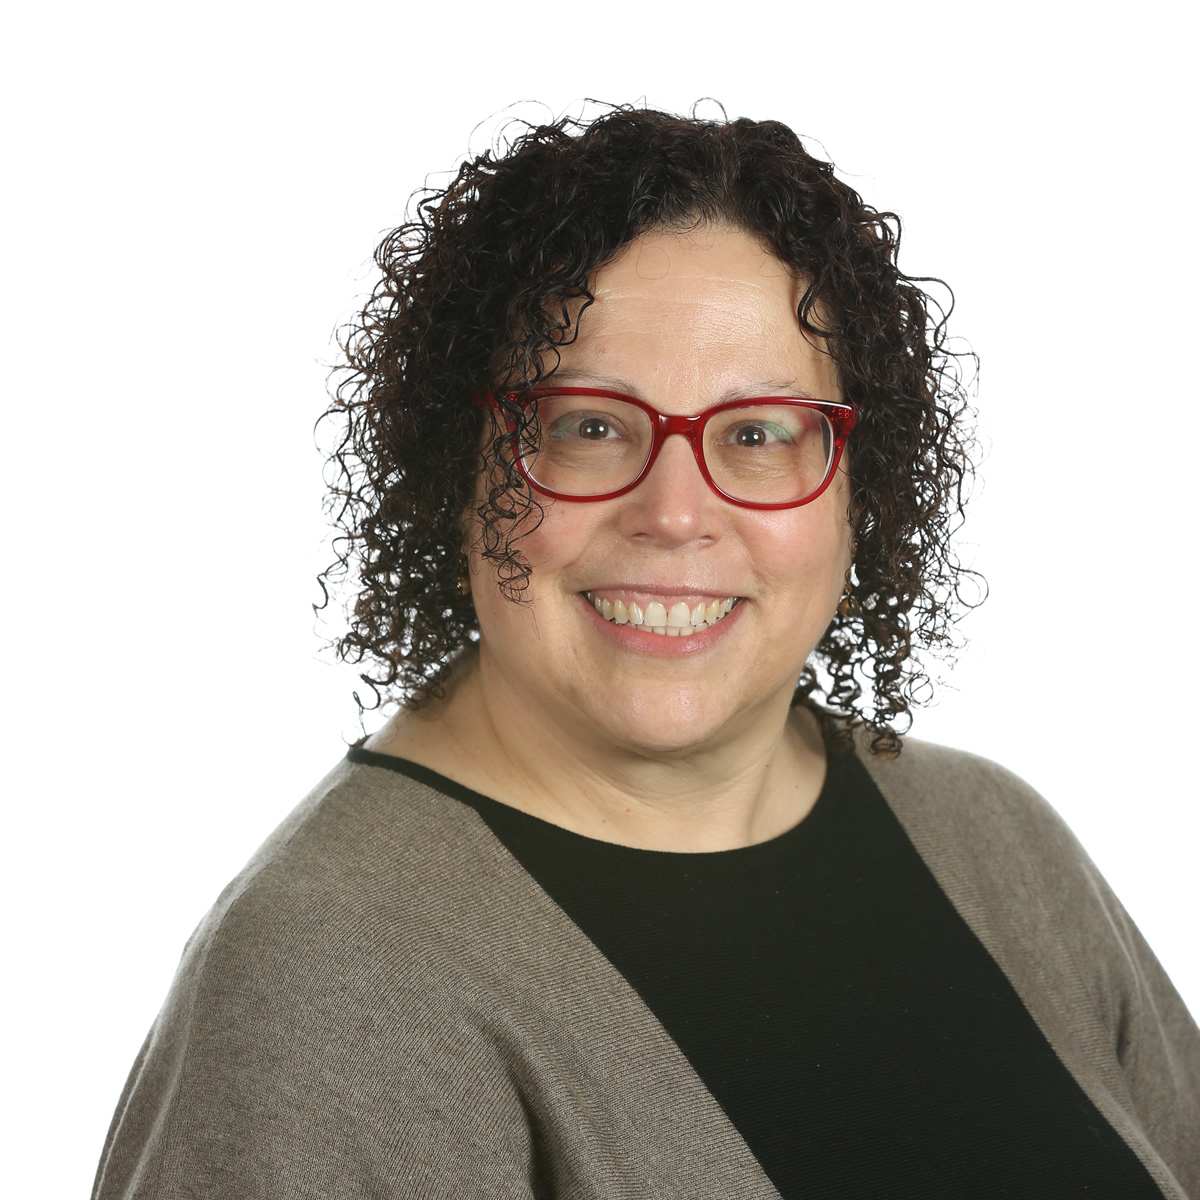 Annette Russo, Environmental Health, Safety & Sustainability Professional